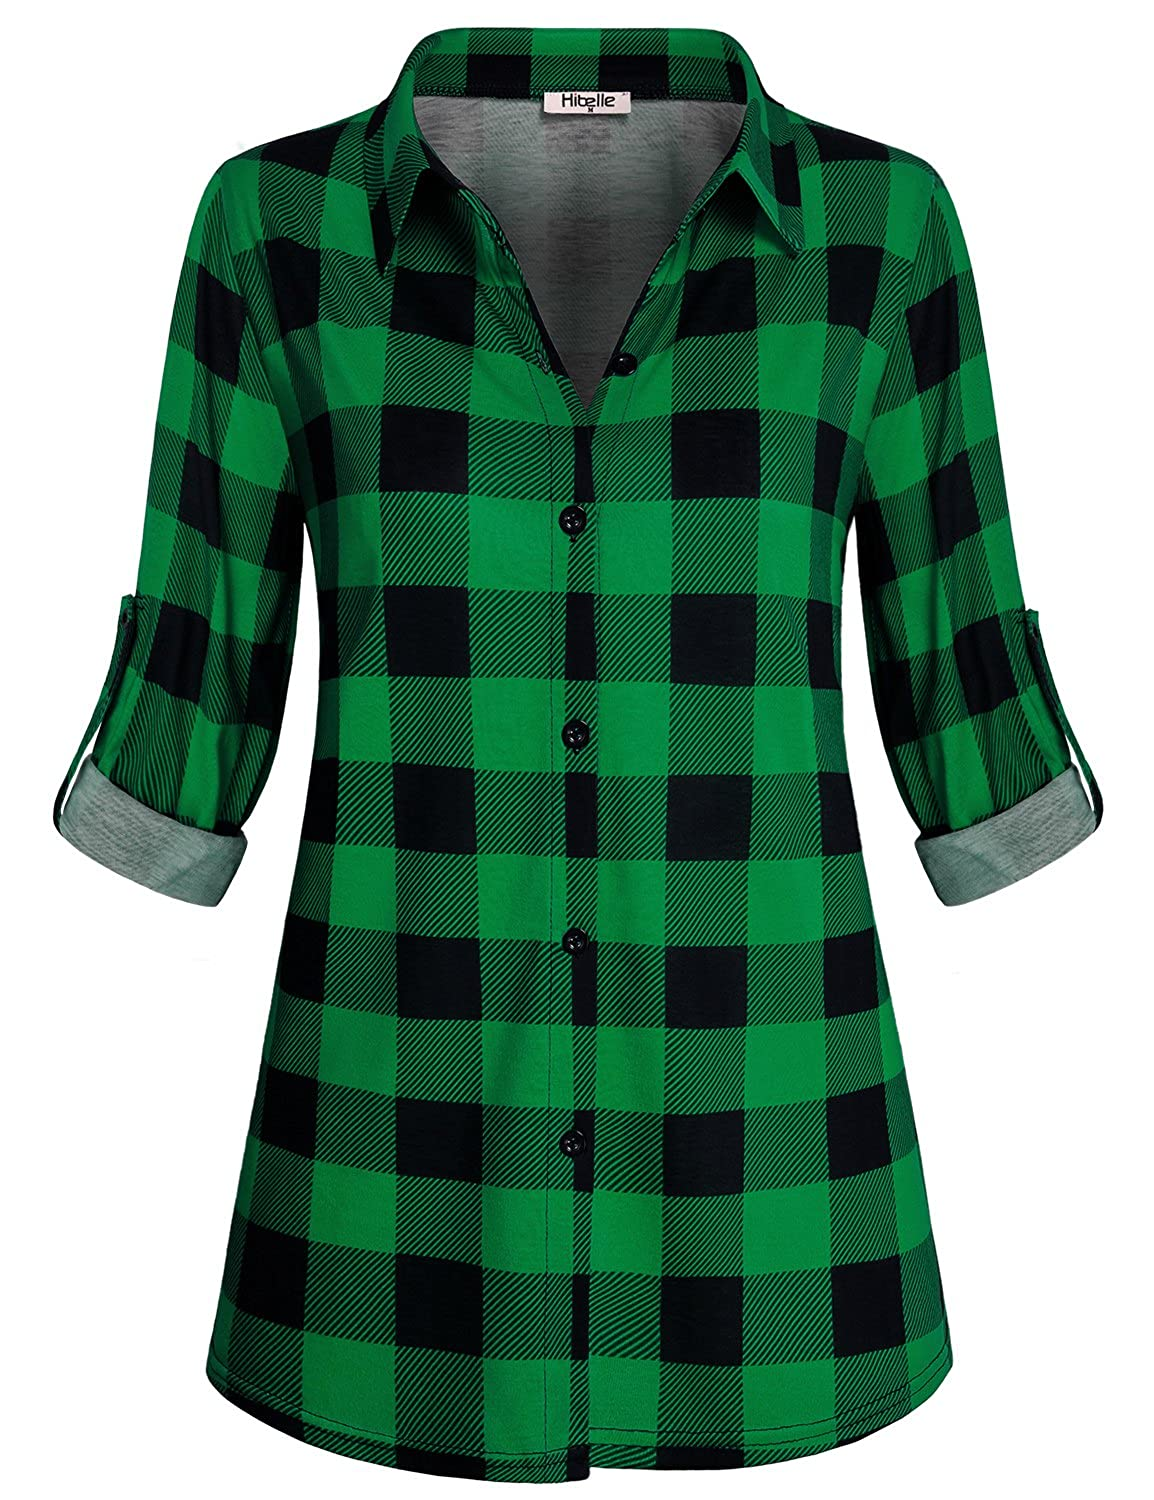 Hibelle Collared Shirts For Women Juniors Fashion Ruched Multicolor